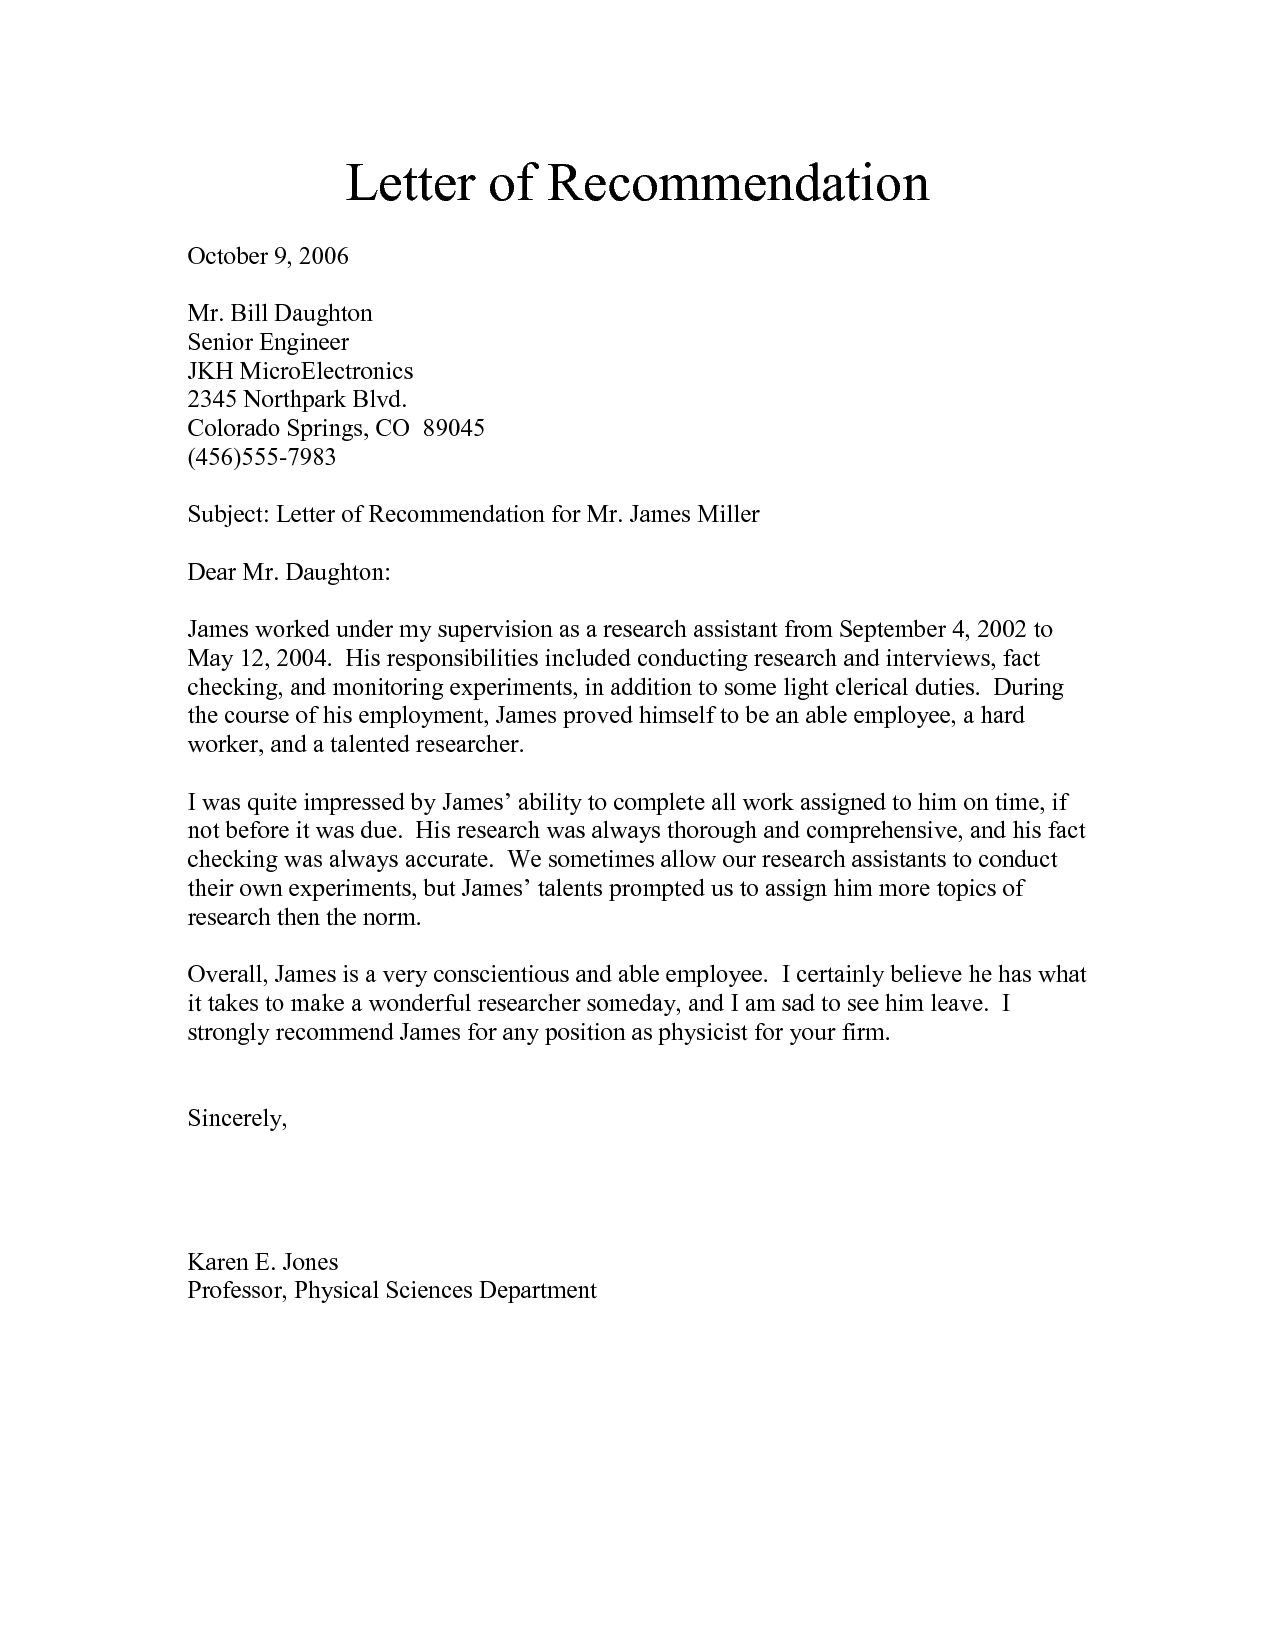 army letter of recommendation exampleletter of recommendation formal letter sample